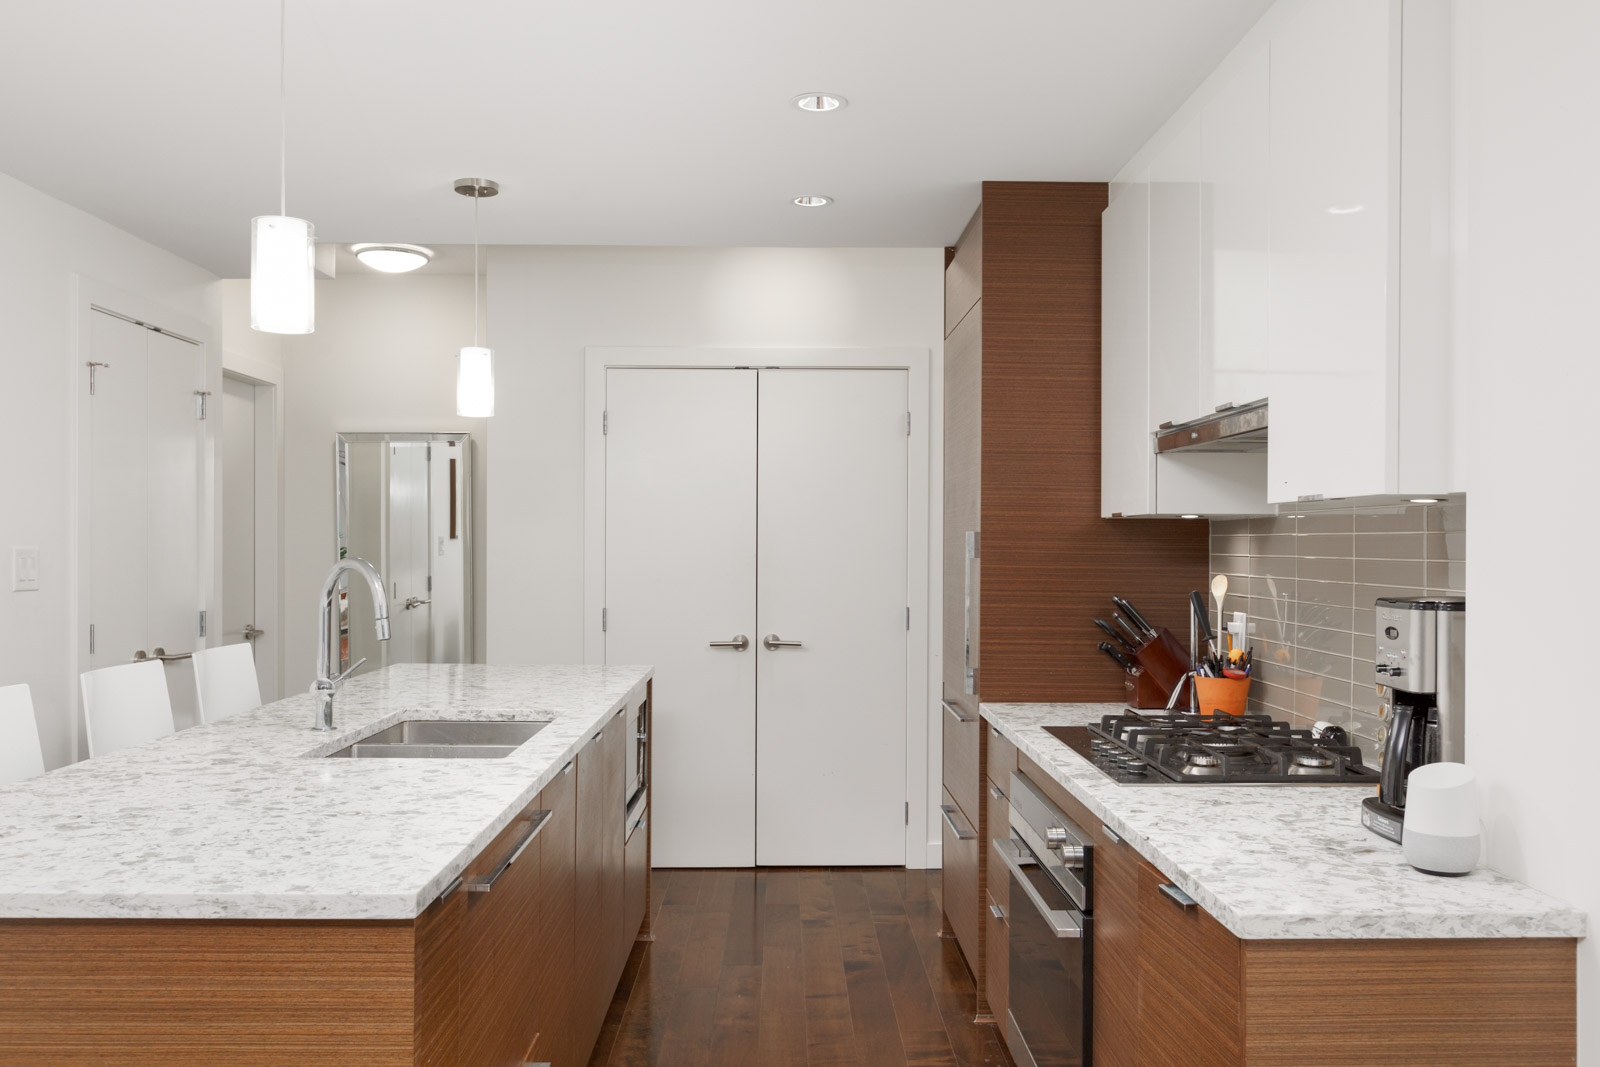 condo kitchen with white countertops and wood cabinets and white doors and walls in background